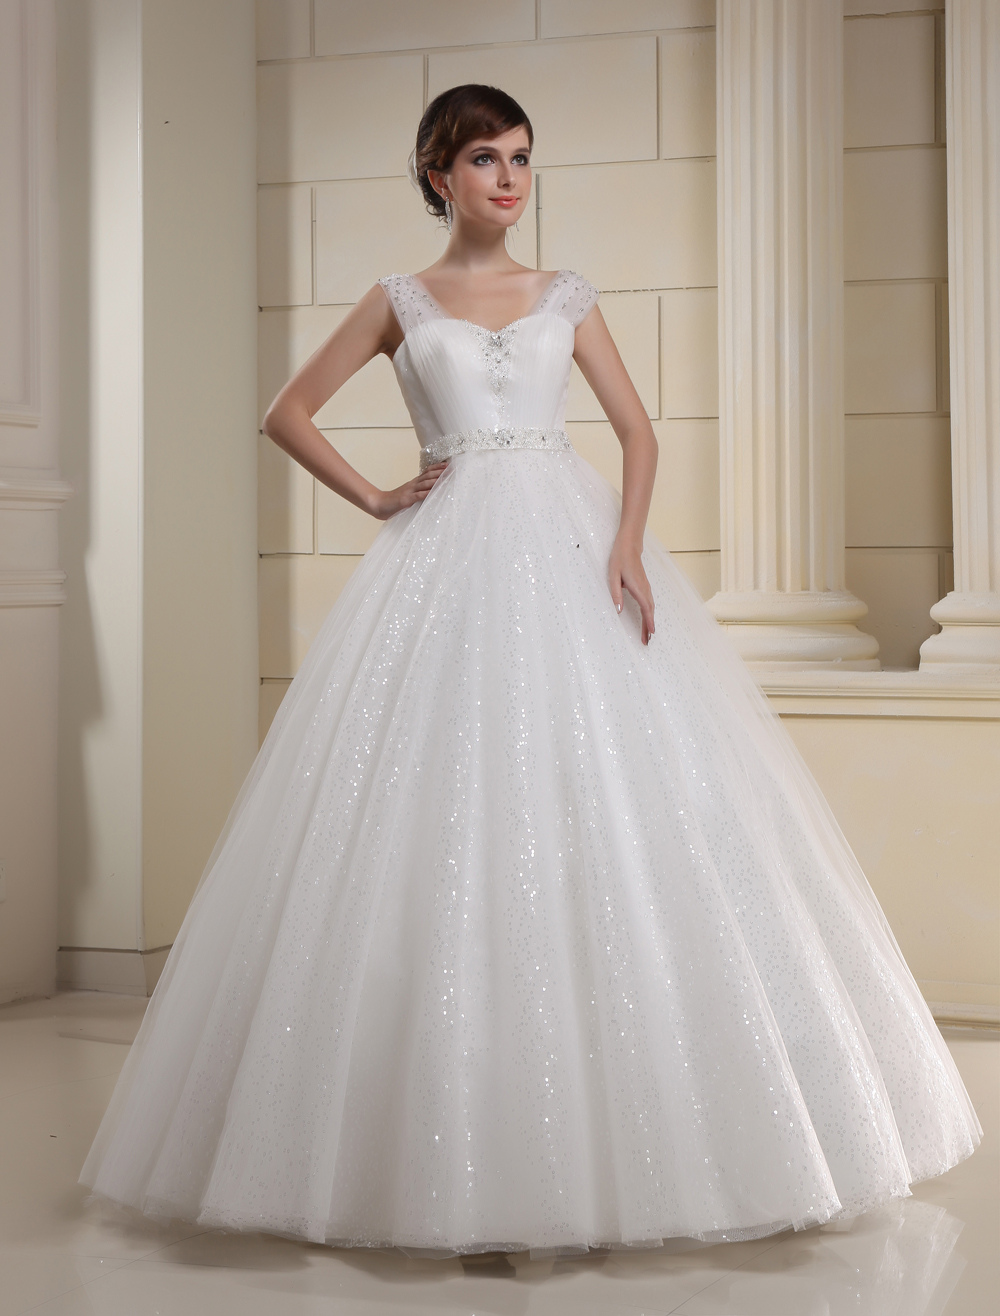 White Sweetheart Sequin Beading Tulle Bridal Wedding Gown